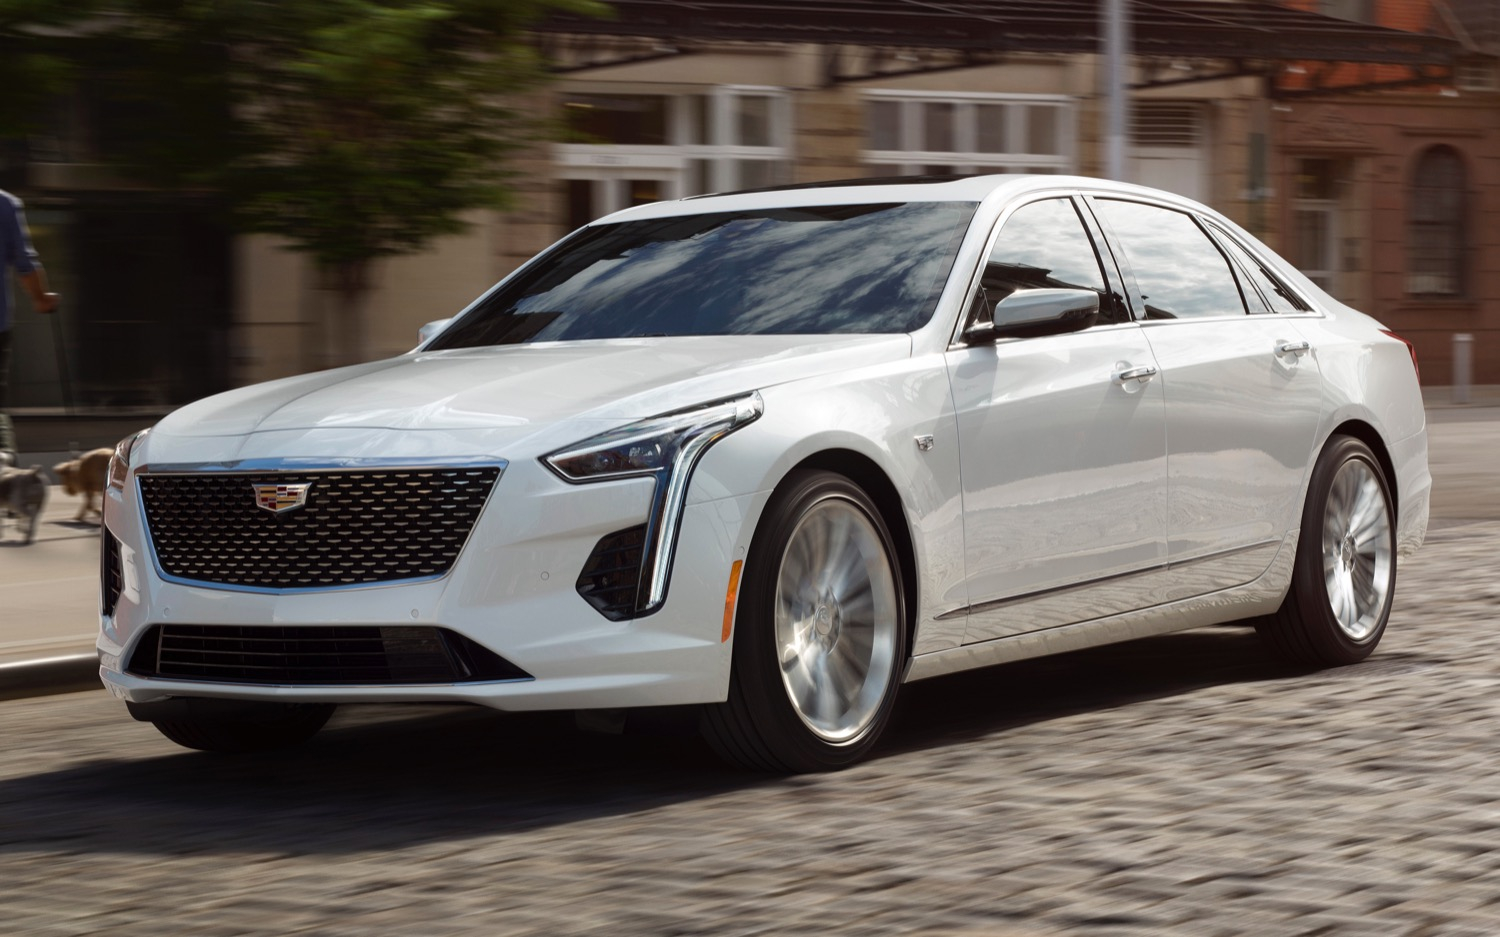 New 2021 Cadillac Ct6 Interior Colors, Engine, Lease Price ...